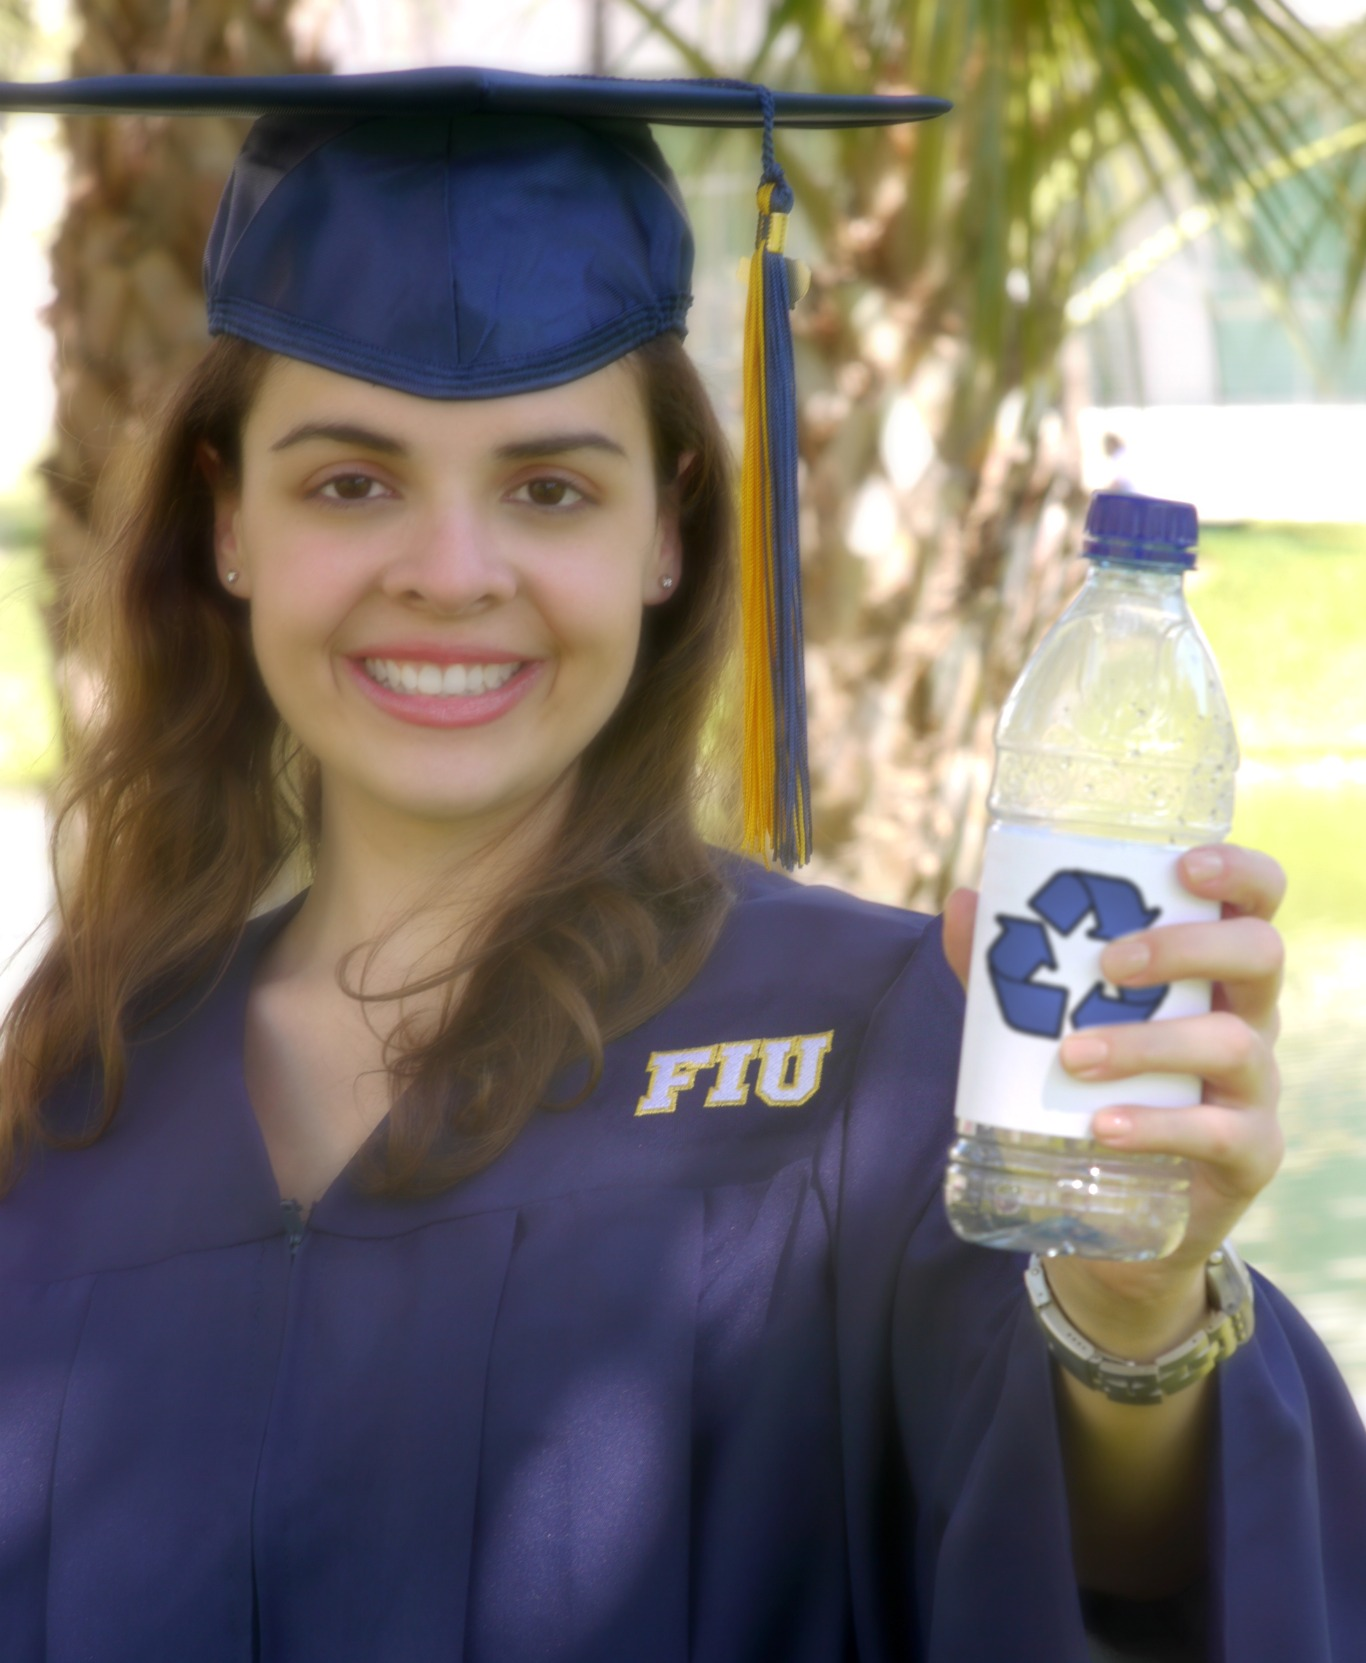 Earth-friendly commencement gowns: All the rage this spring at FIU